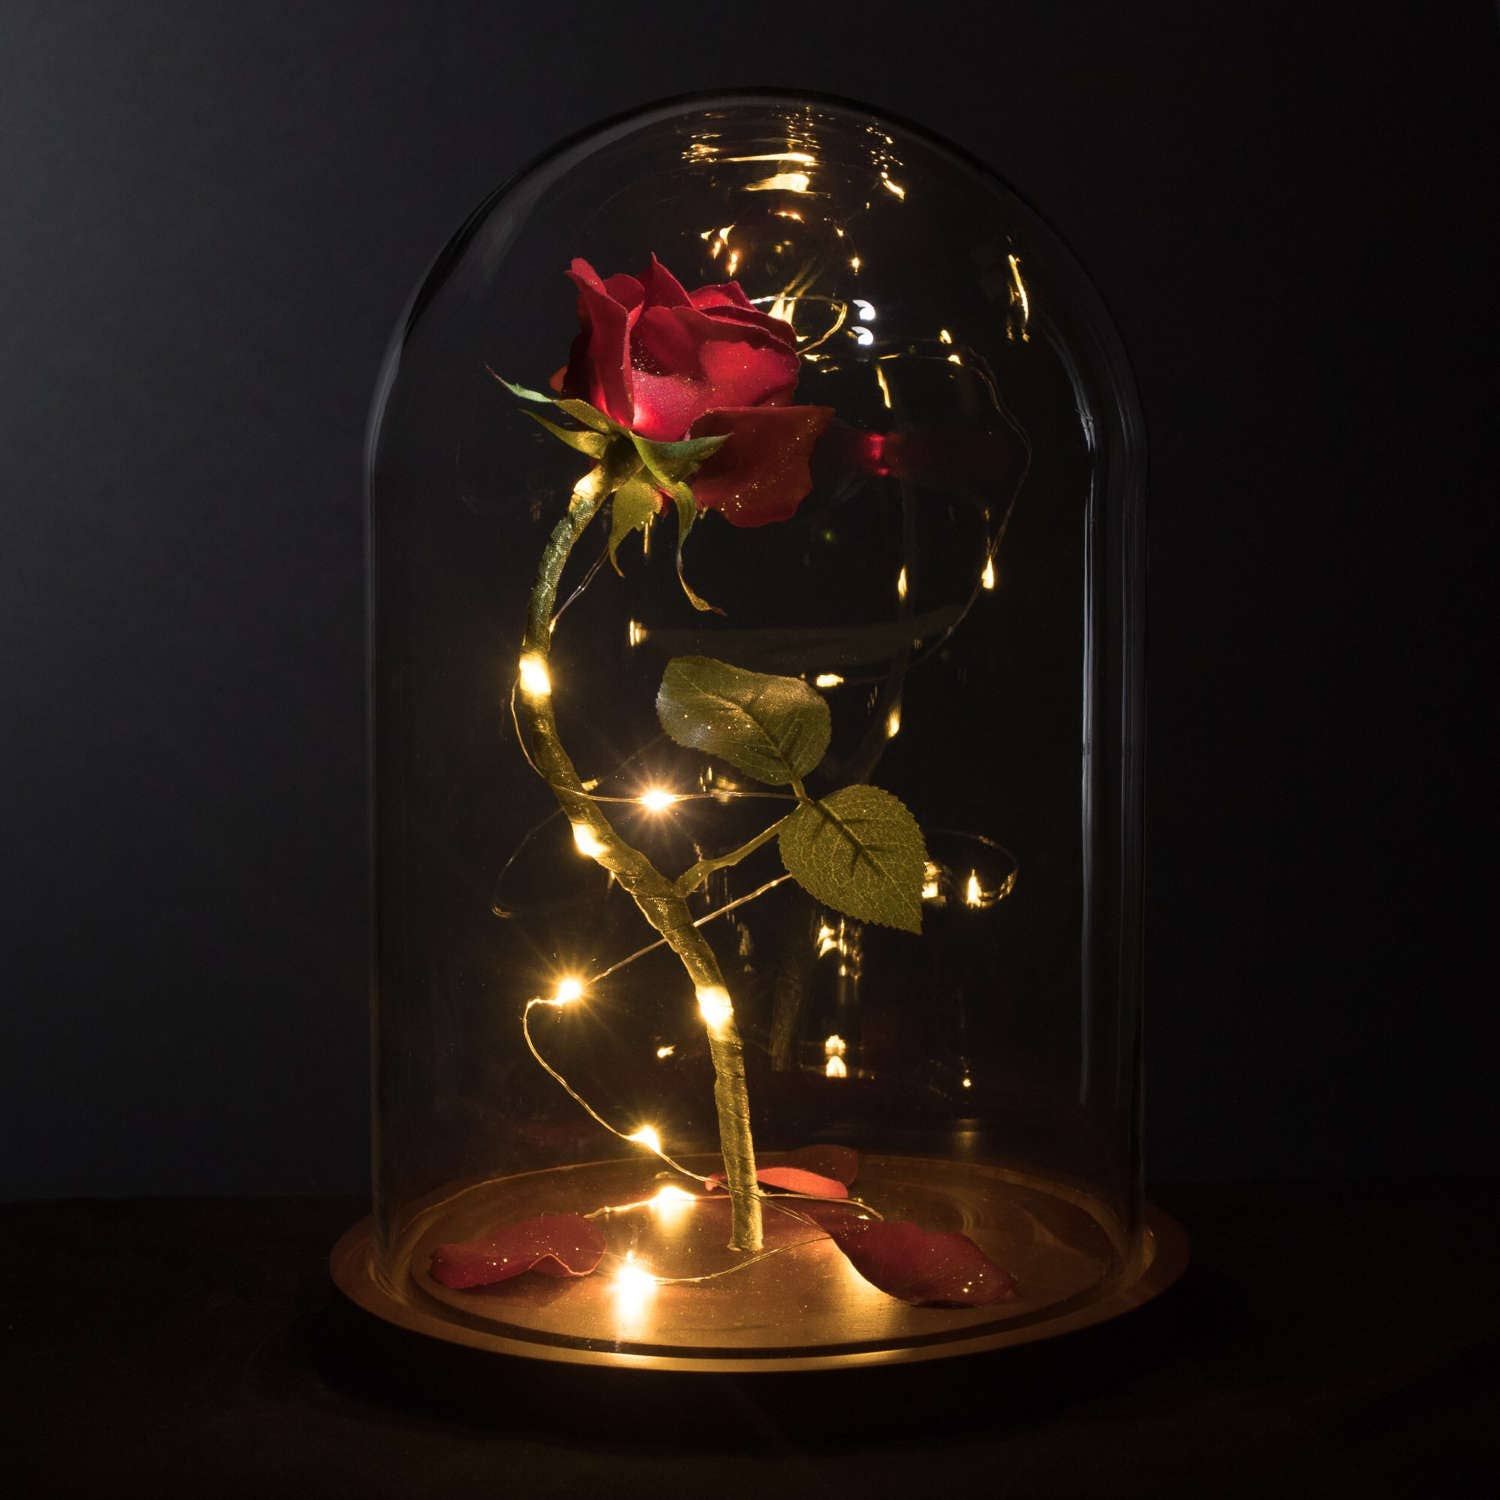 Enchanted Rose Life Sized From Beauty And The Beast